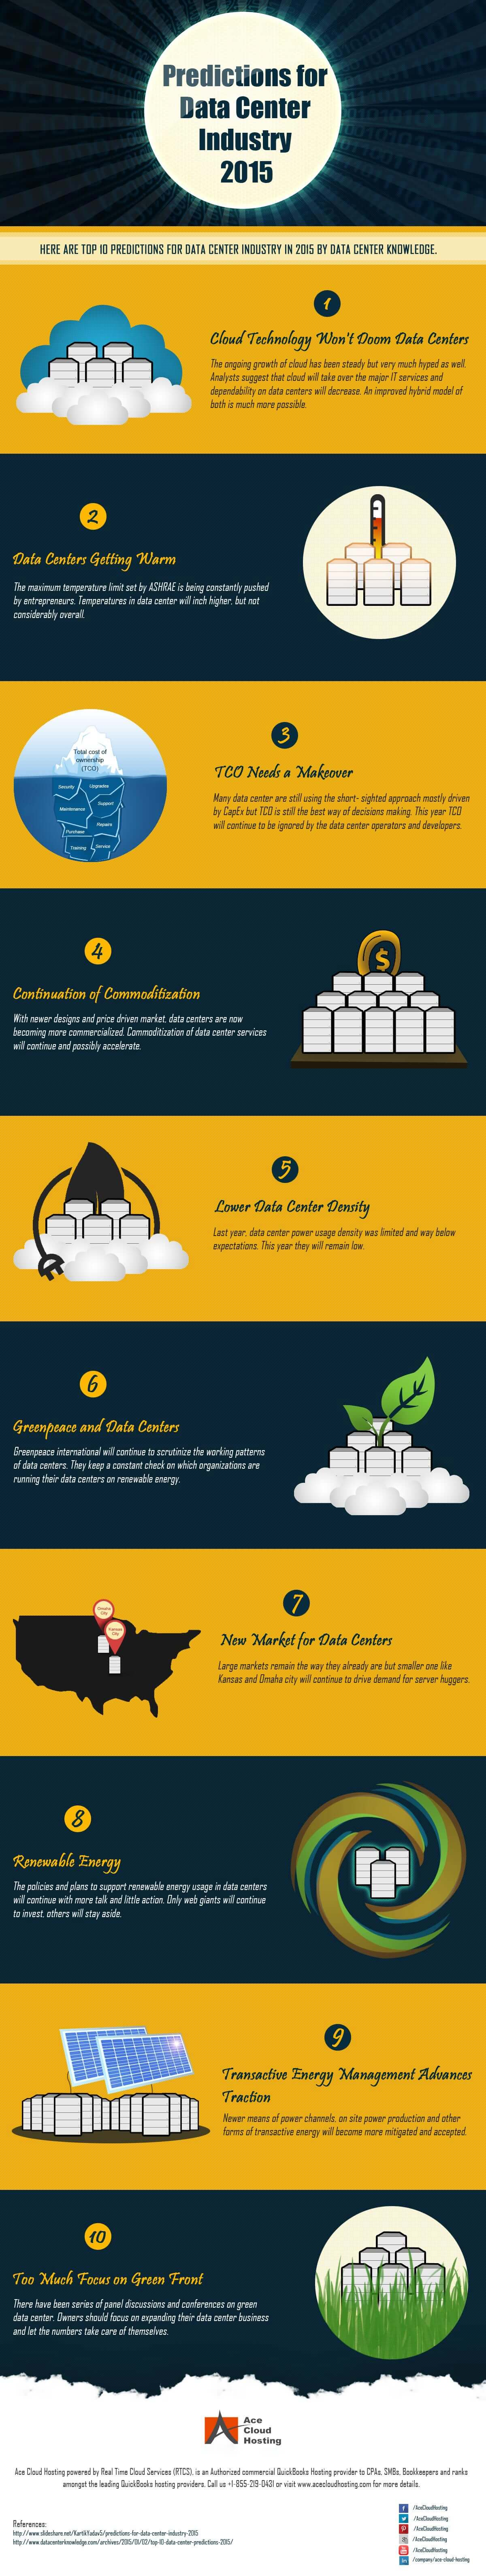 Predictions for Data Center Industry 2015